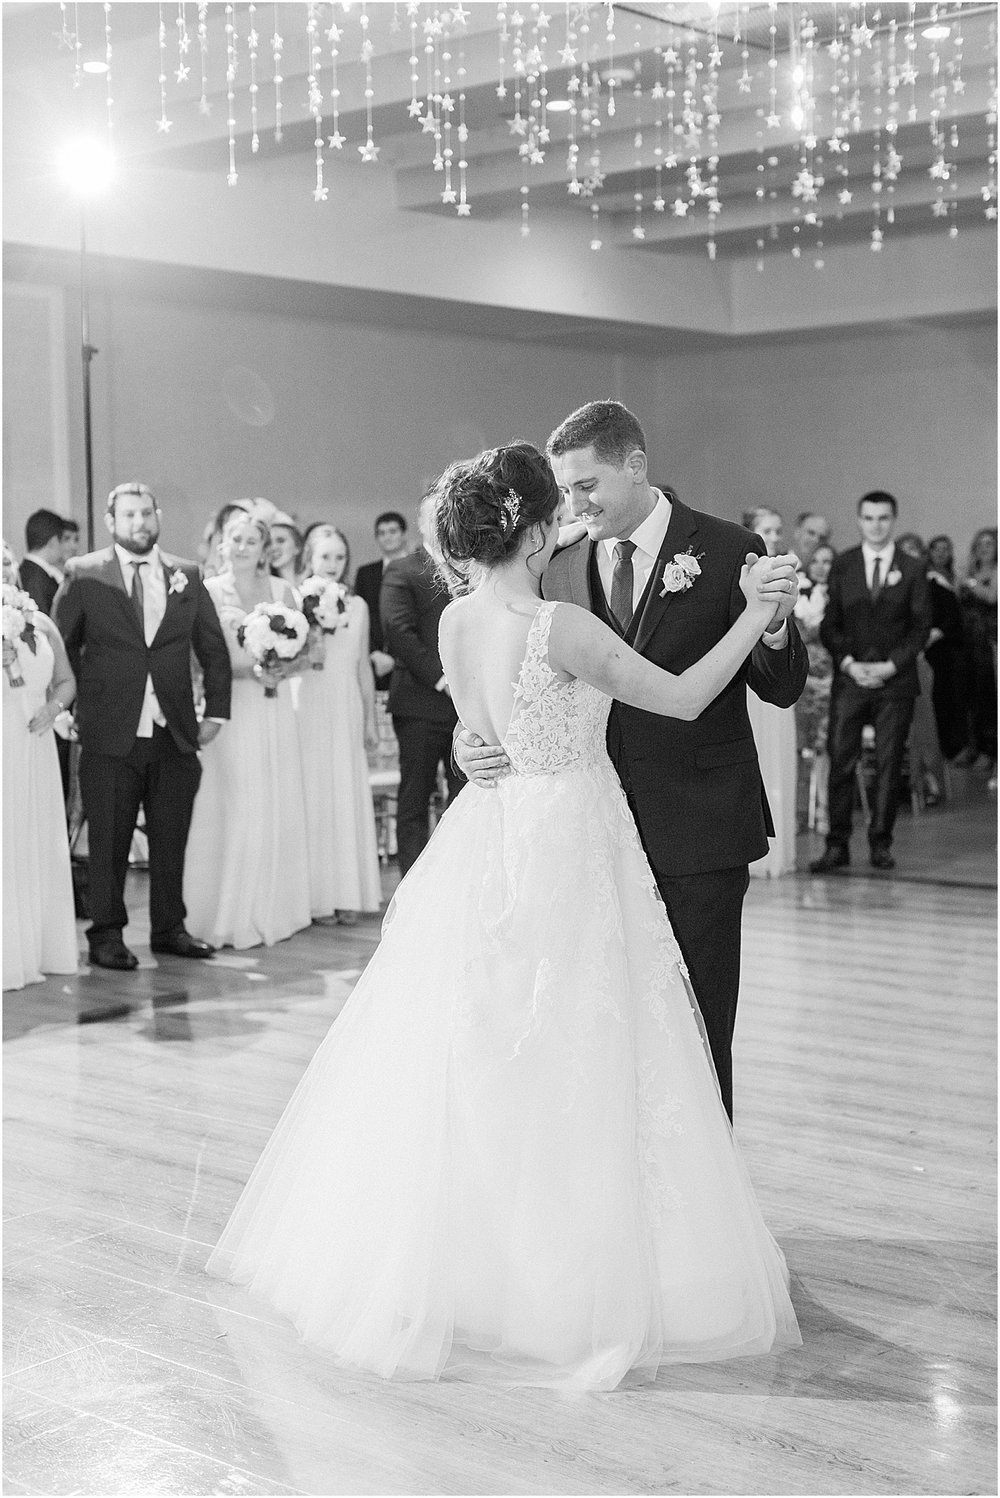 shannon_daniel_dan_atlantic_resort_saint_marys_st_mary_church_fall_newport_catholic_irish_cape_cod_boston_wedding_photographer_meredith_jane_photography_photo_1650.jpg